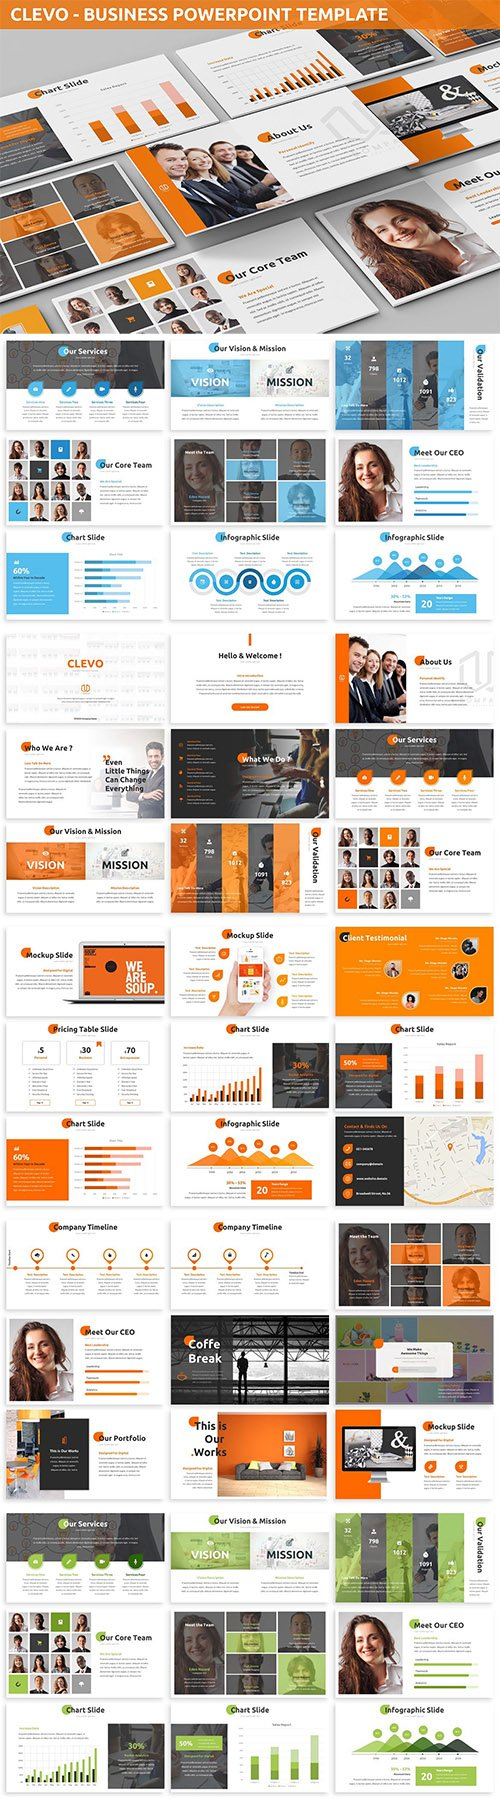 Clevo - Business Powerpoint Template